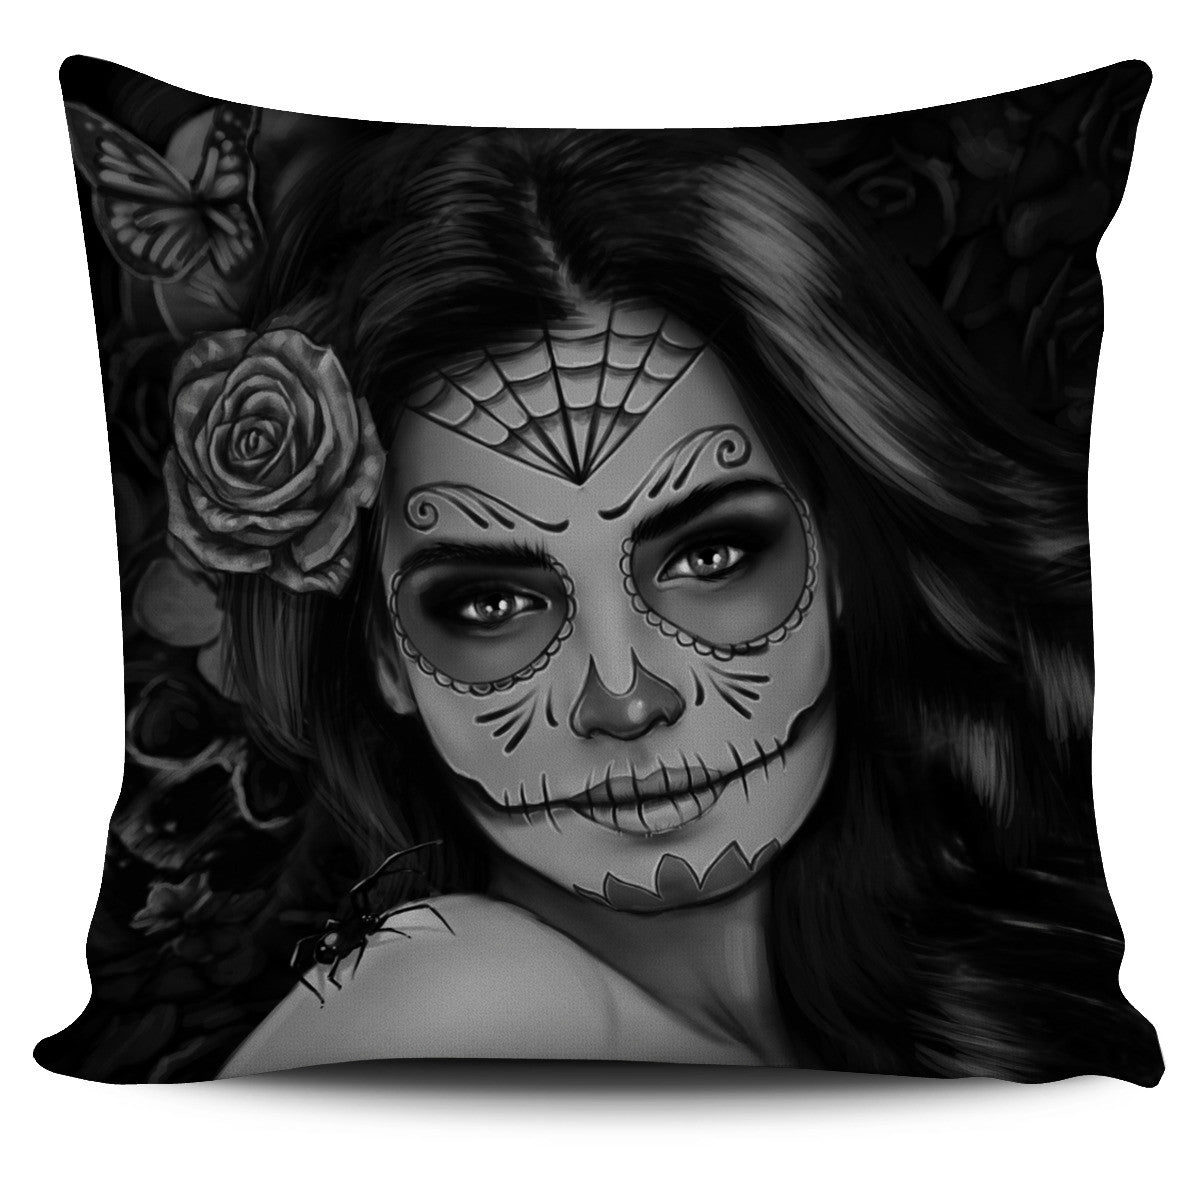 Tattoo Calavera II Pillow Covers